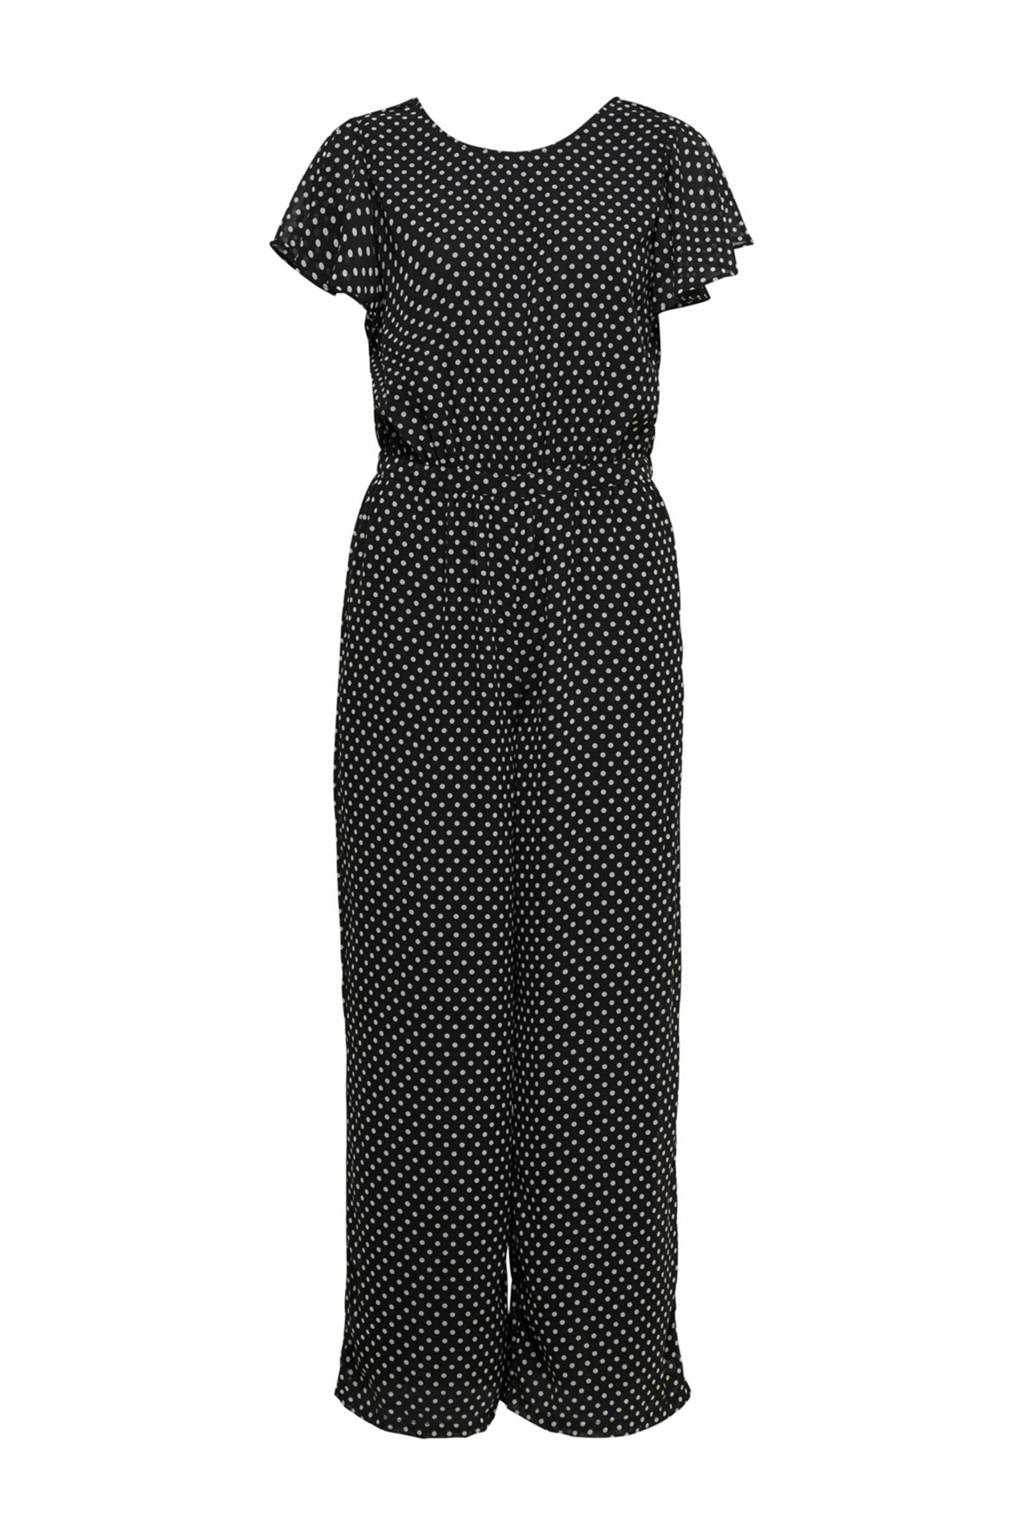 ONLY jumpsuit met stippen, Zwart/wit